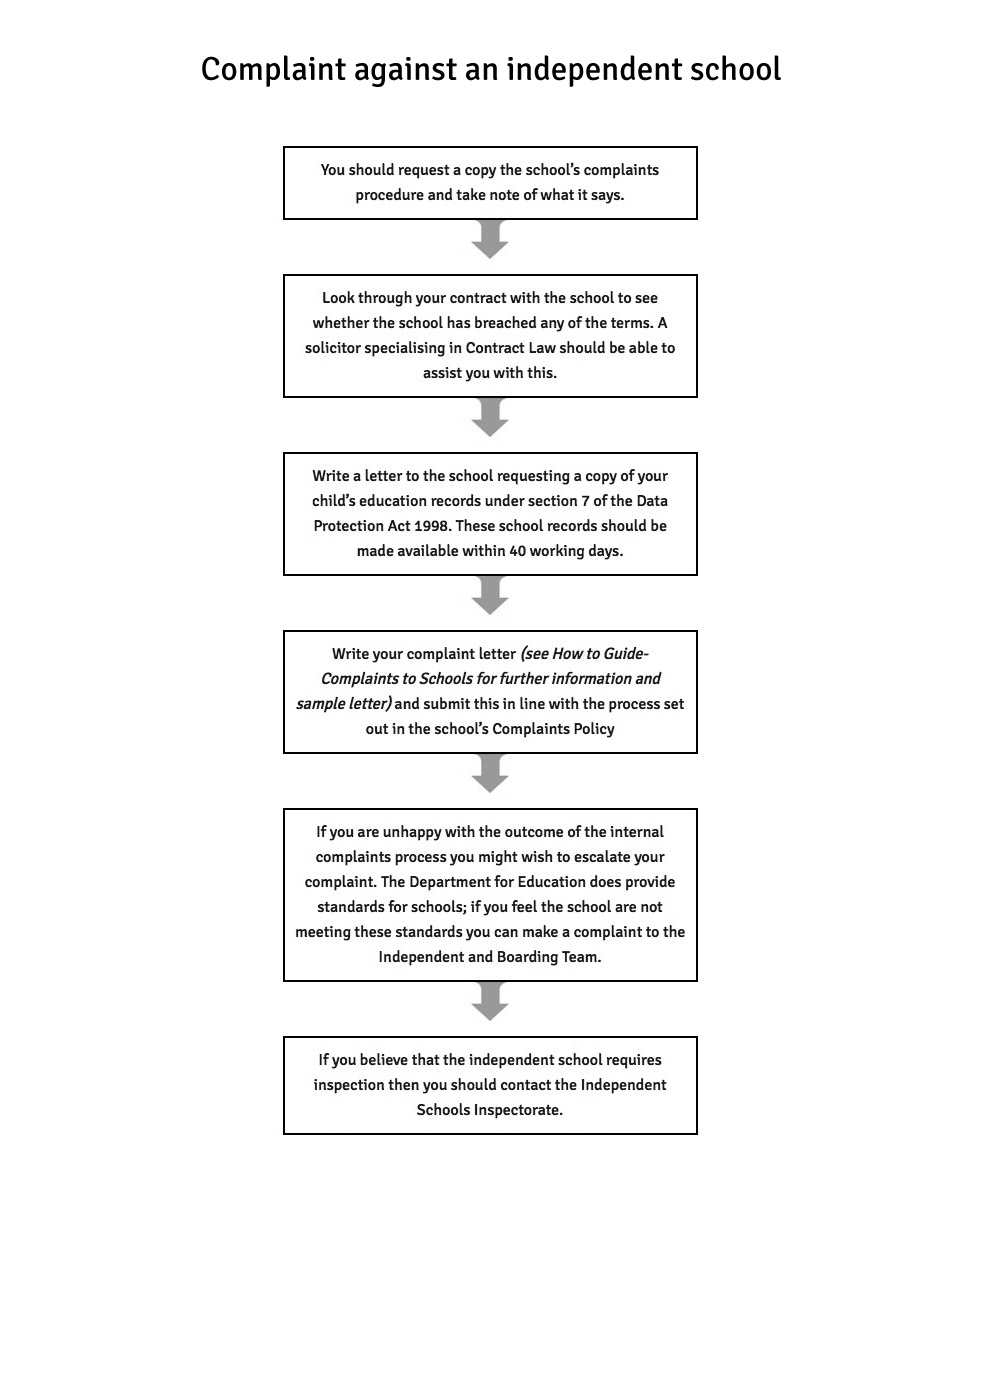 Complaints To Independent Schools Data Breach Policy Template Complaint Against An School Flowchart